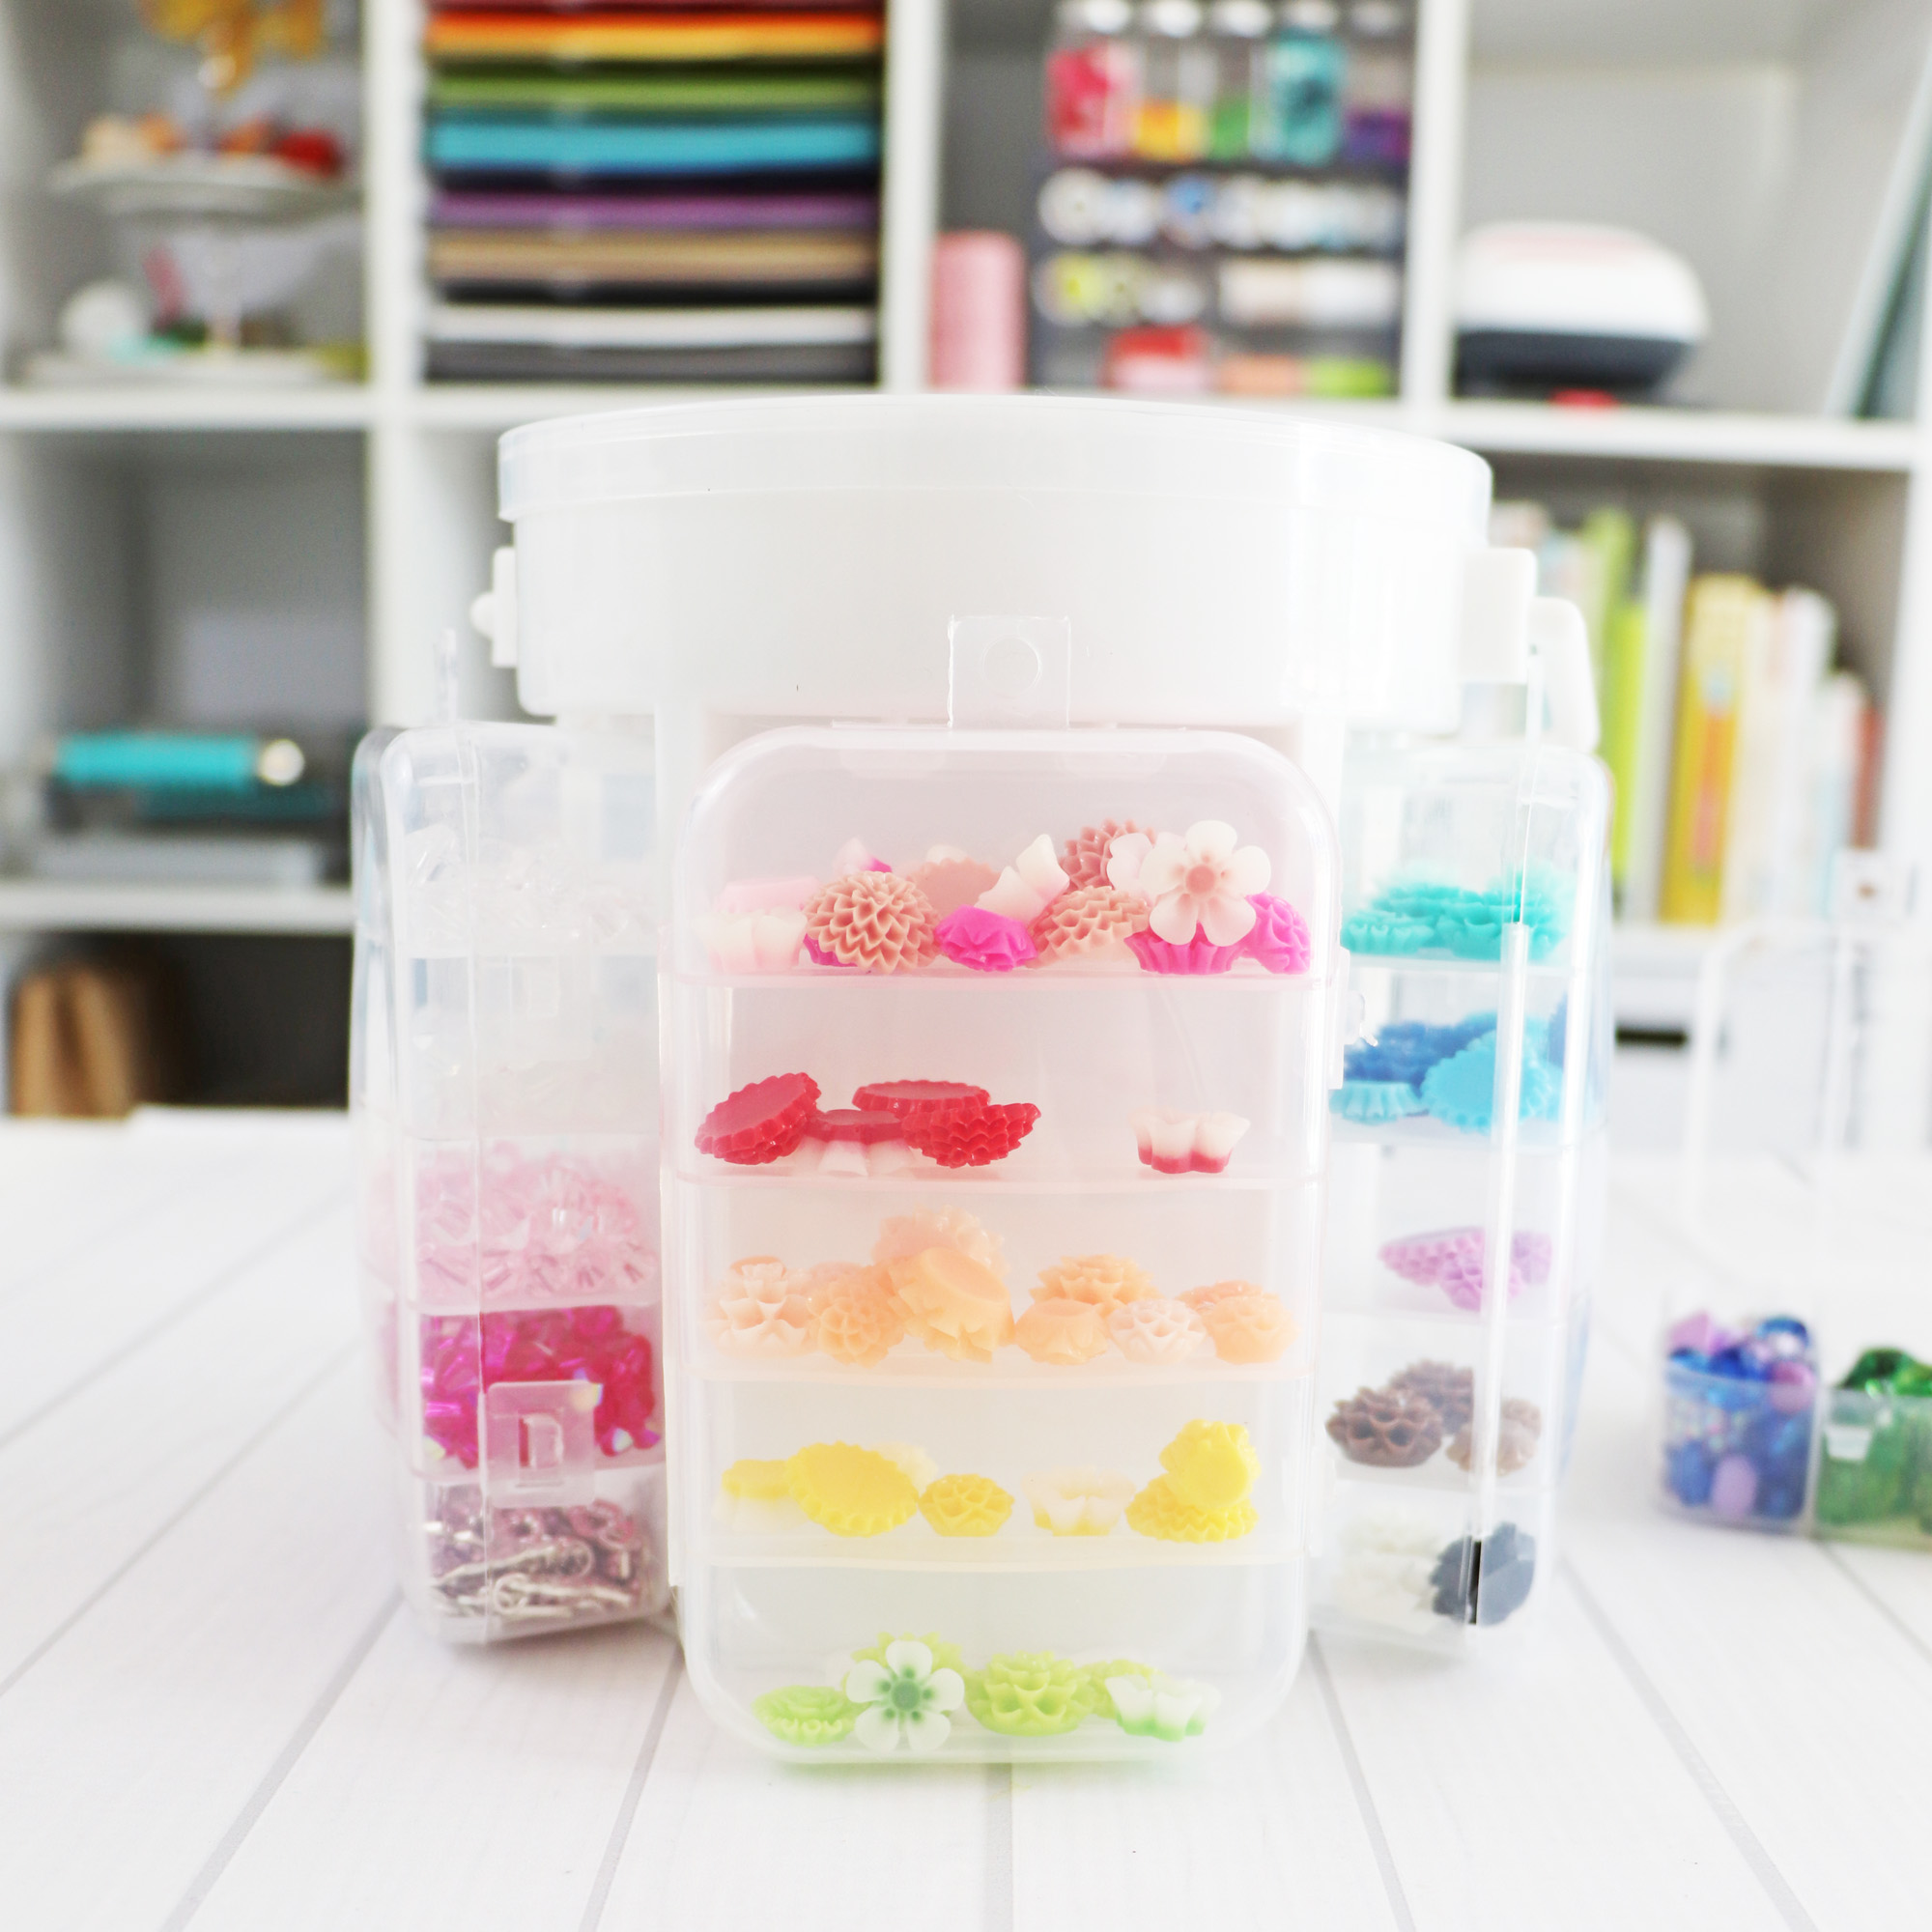 Plastic Storage for Craft Rooms by Laura Silva for We R Memory Keepers